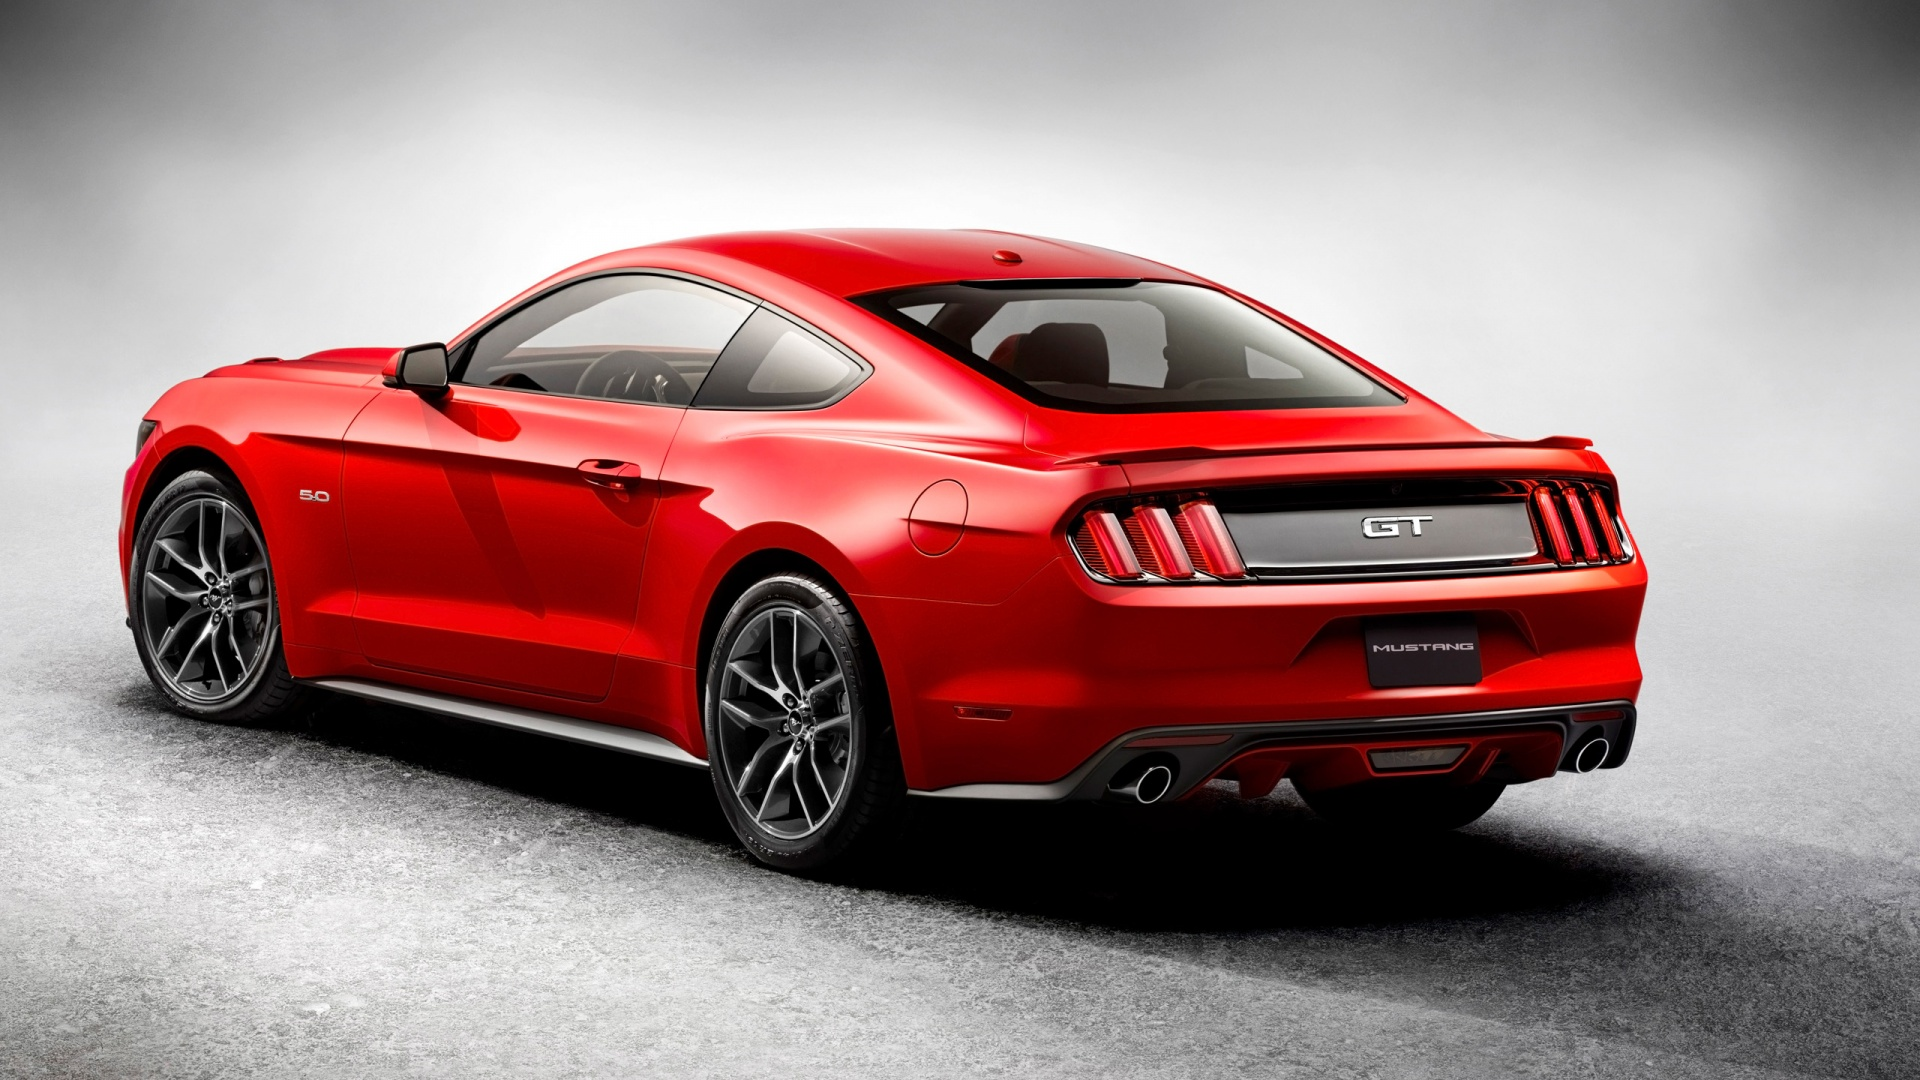 2015 Ford Mustang 3 Wallpaper HD Car Wallpapers 1920x1080